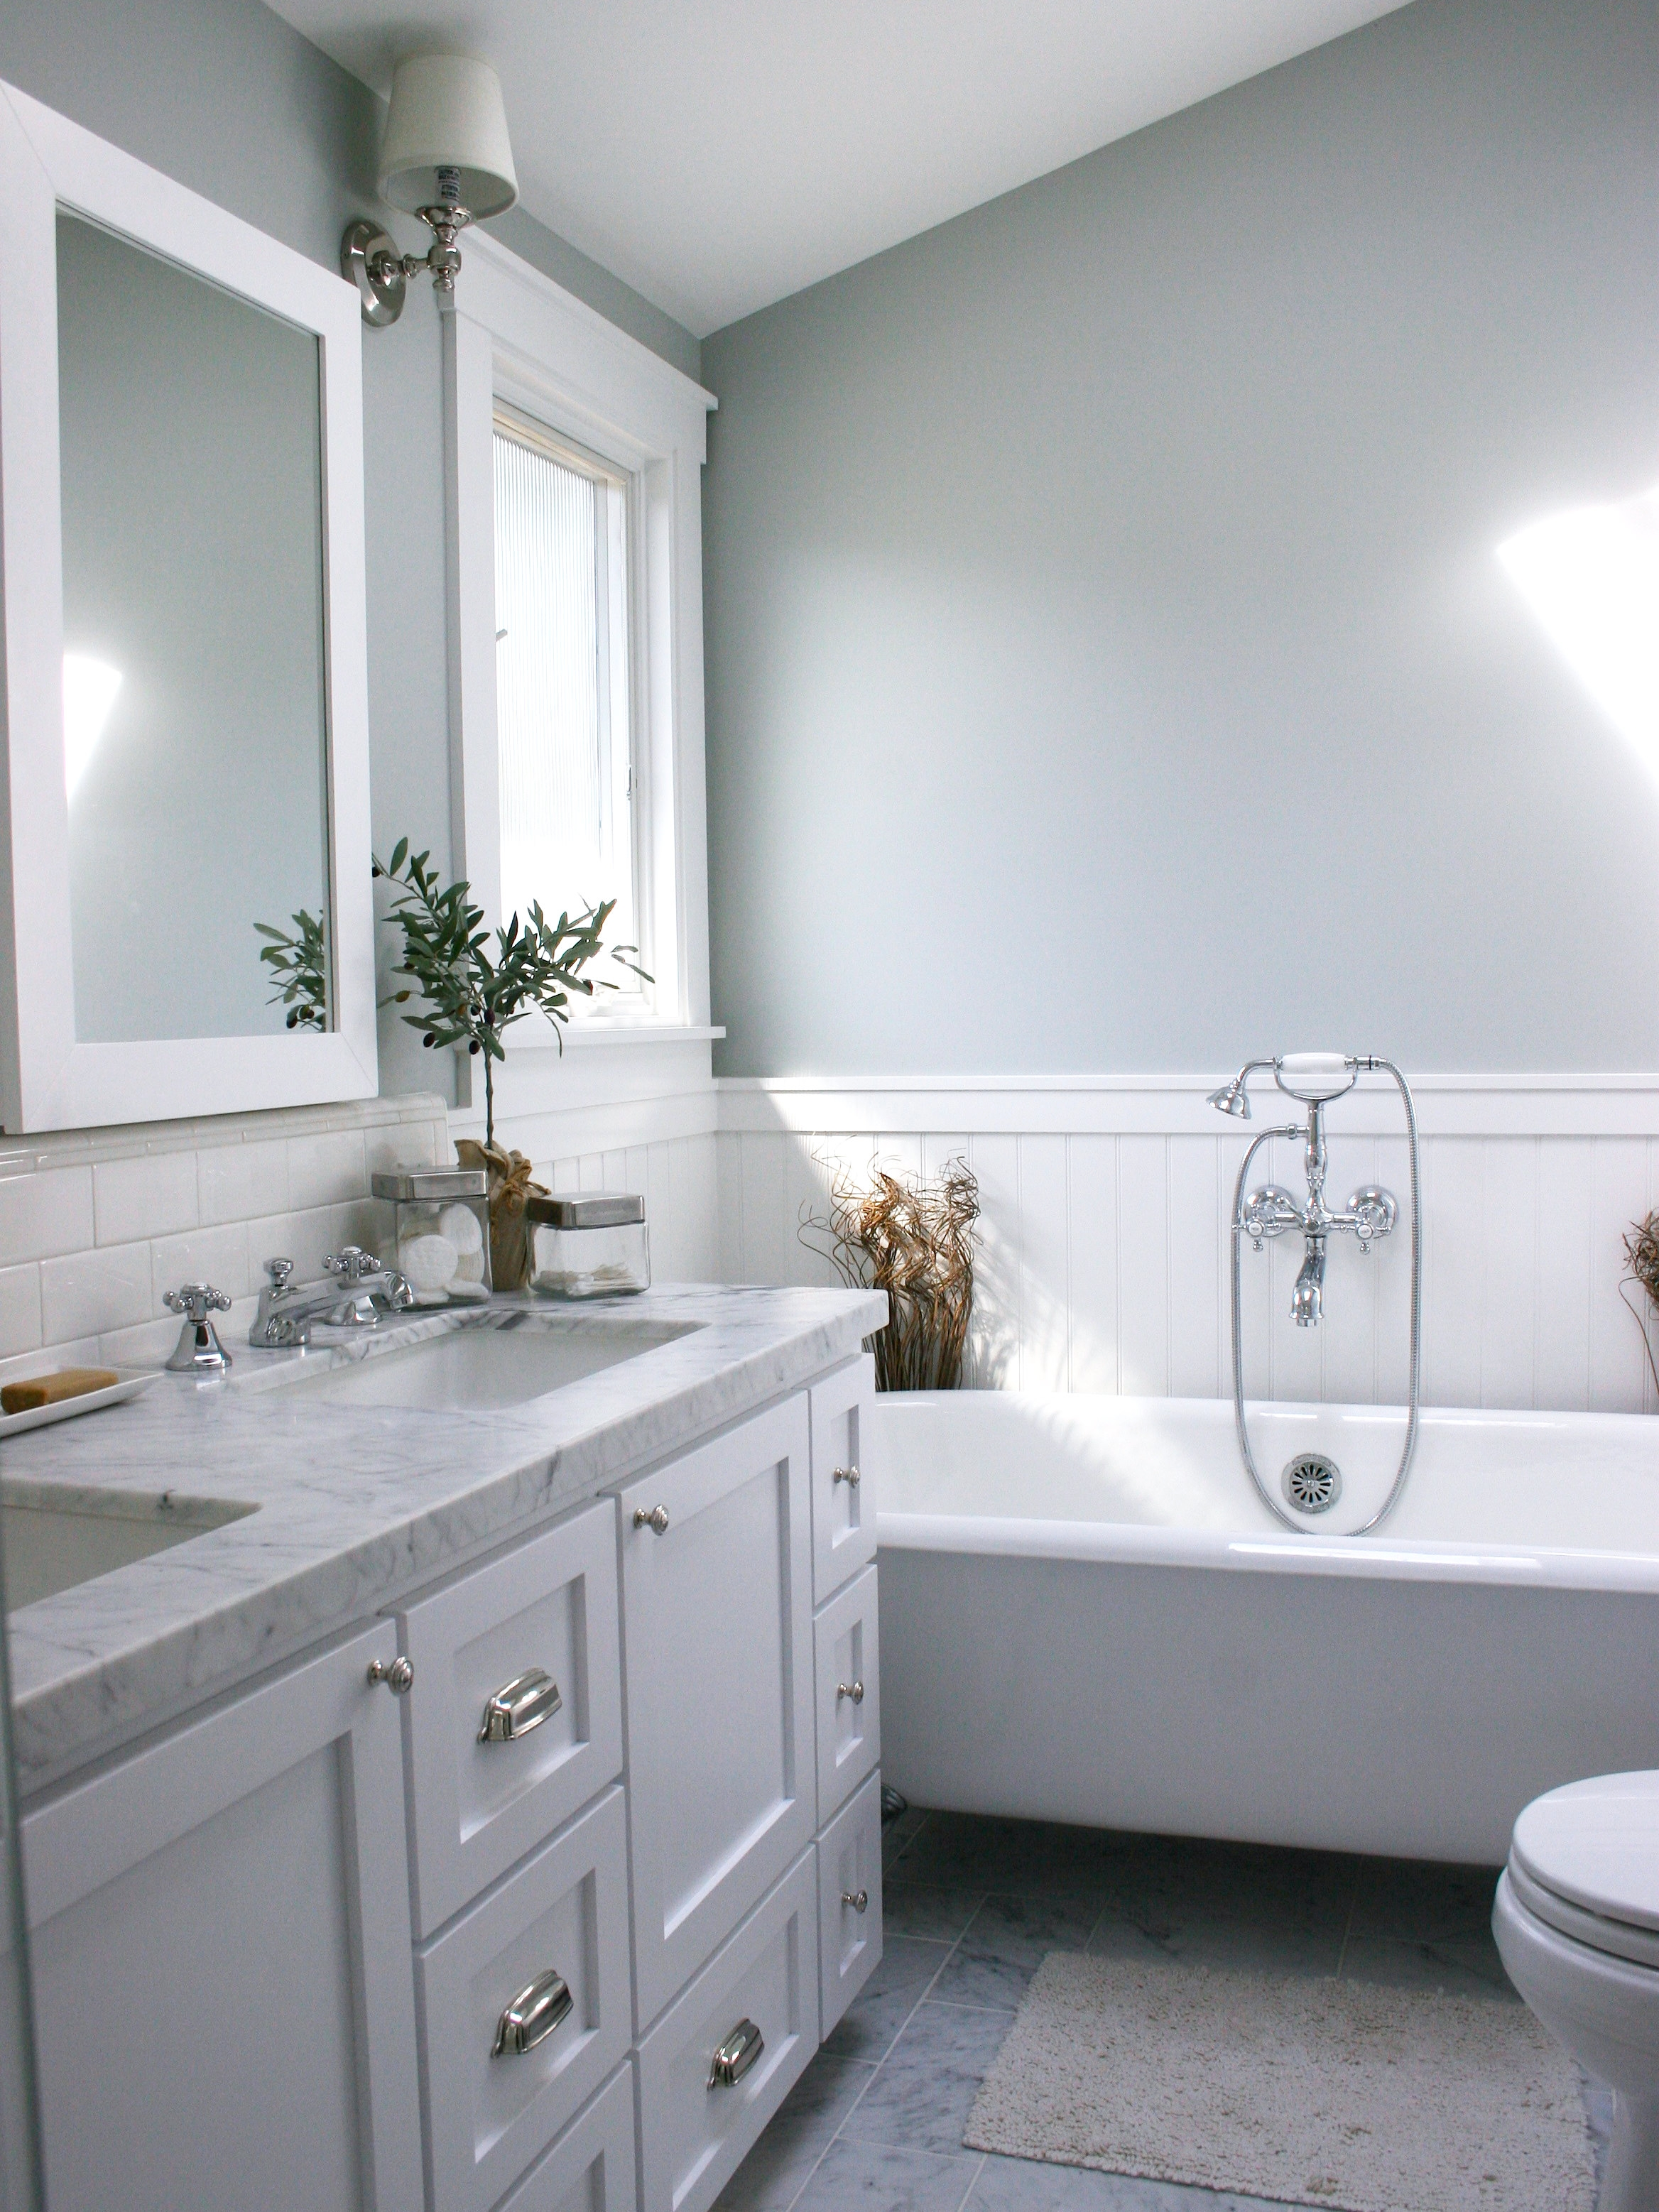 22 stylish grey bathroom designs decorating ideas for White and gray bathroom ideas